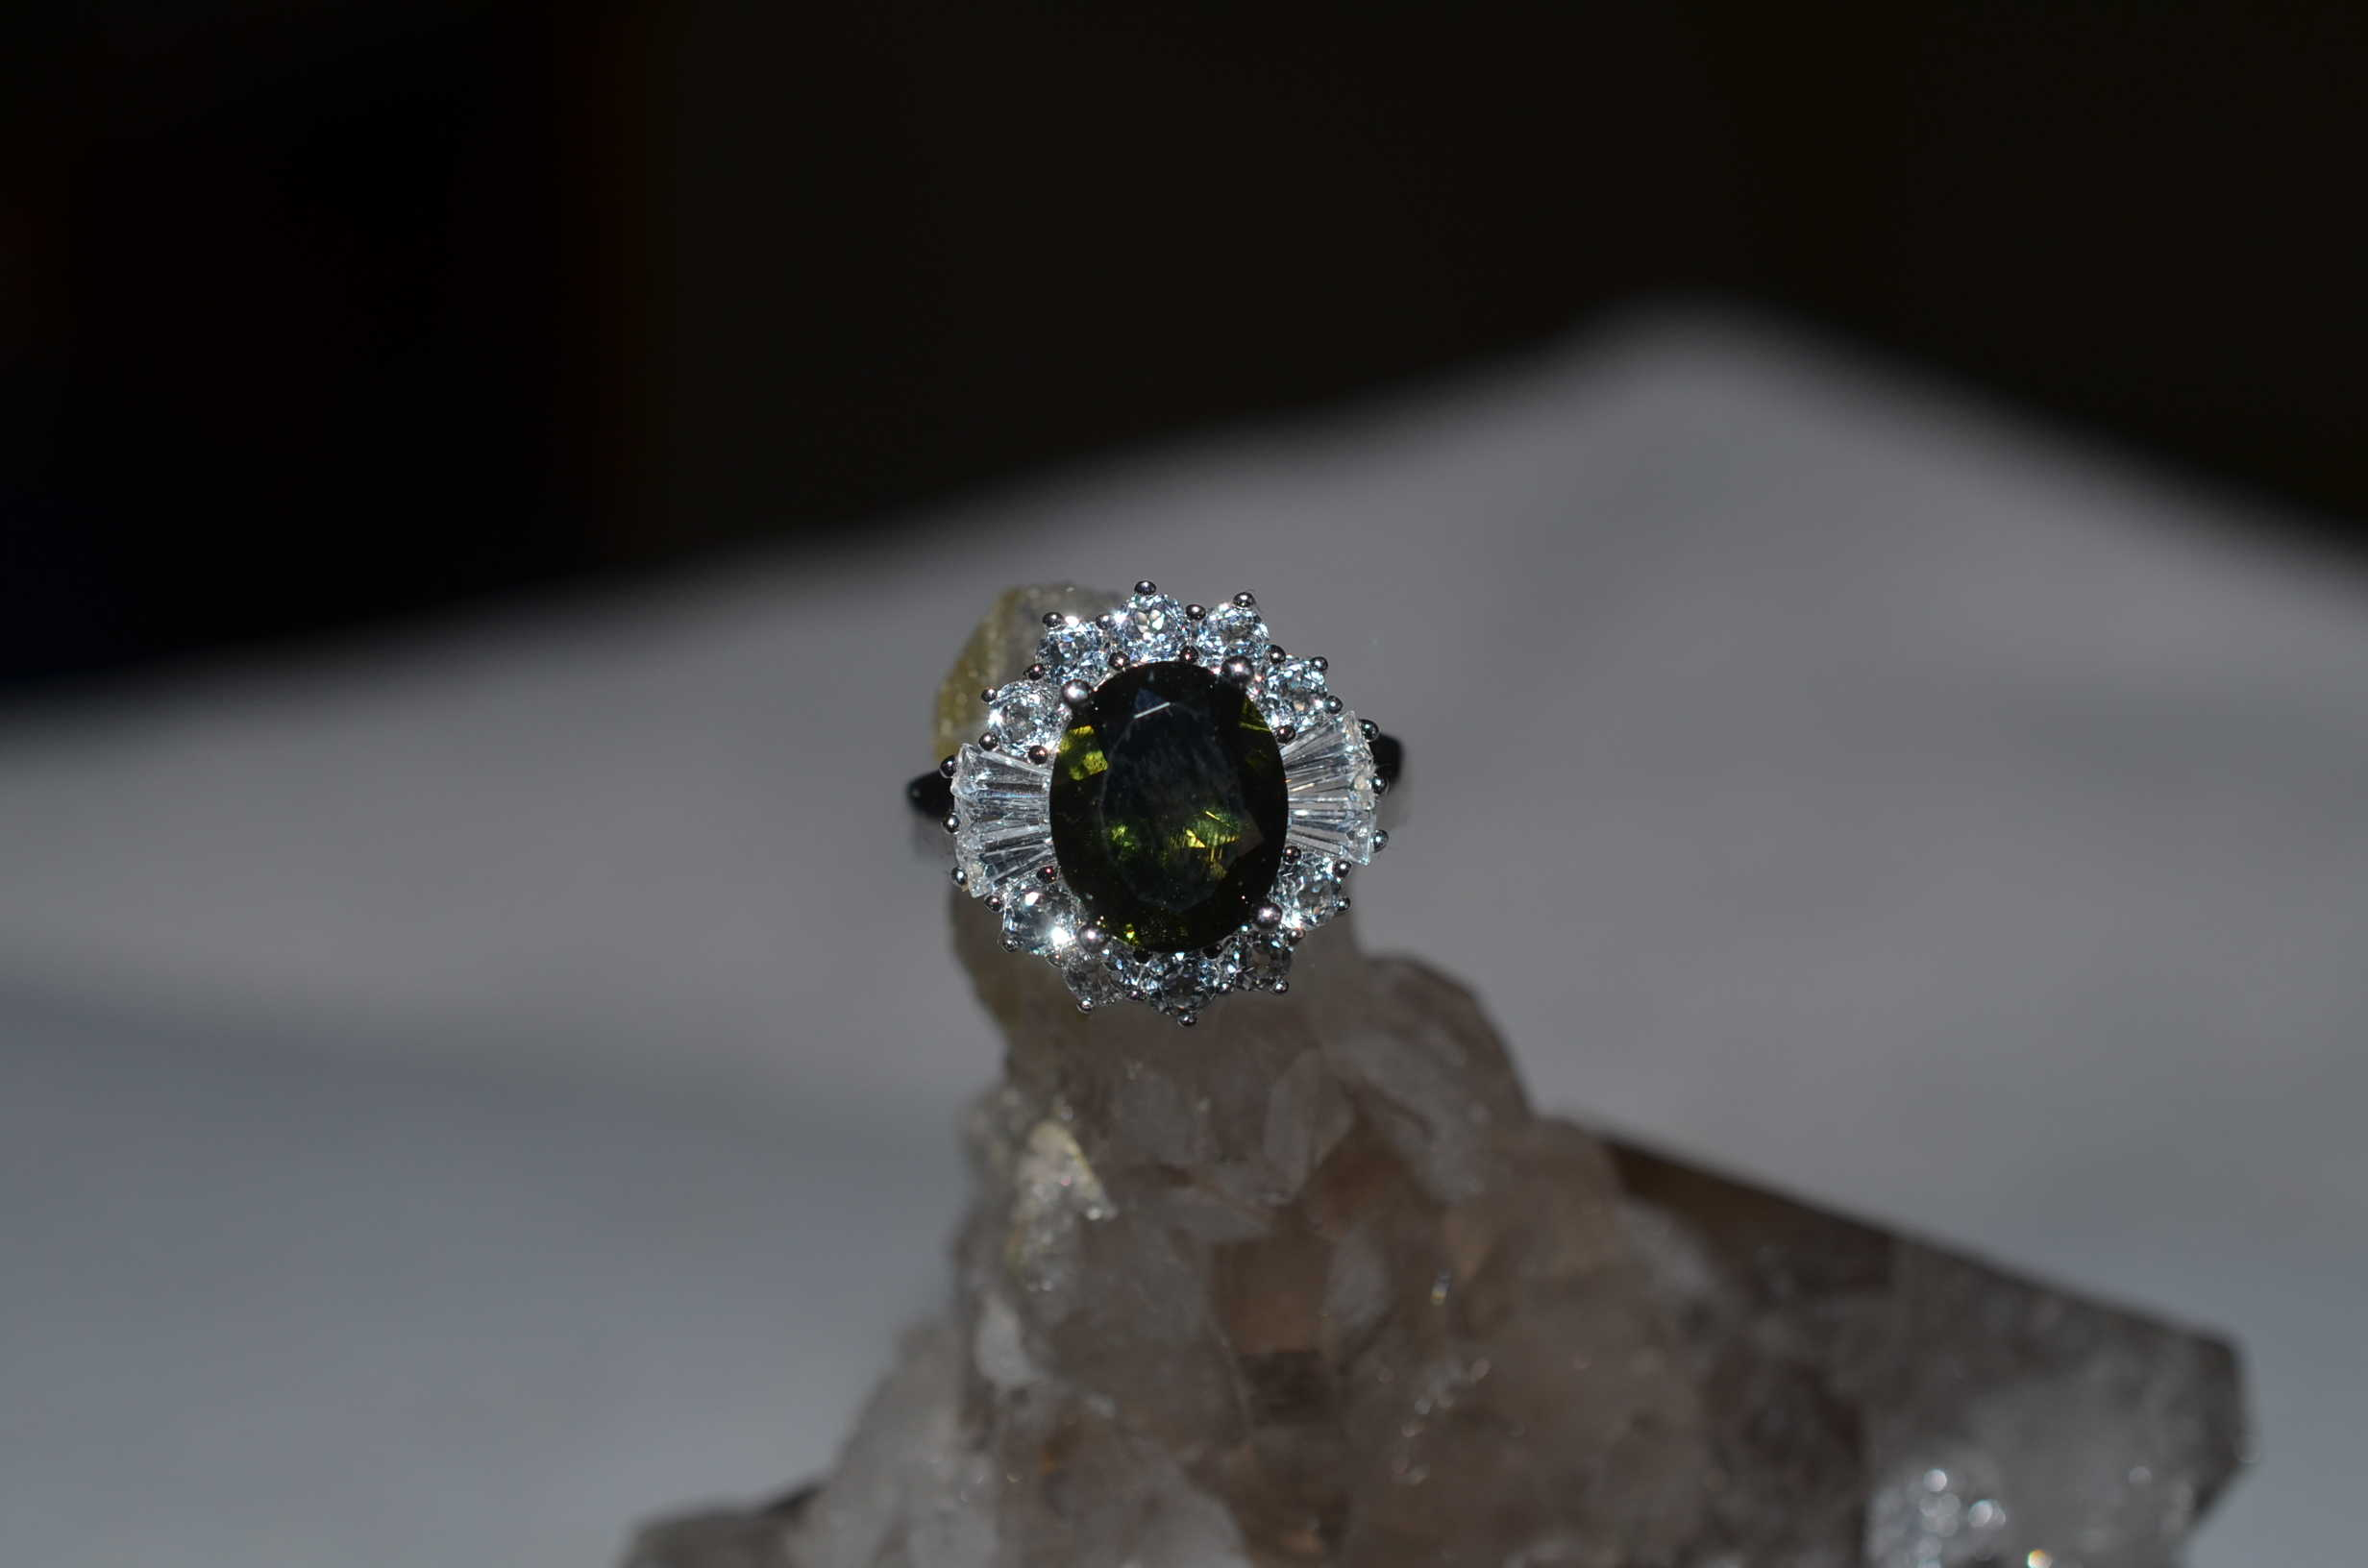 solitaire rings ring jewelry jewelers fine va blog warrenton bezel sphene engagement hartman